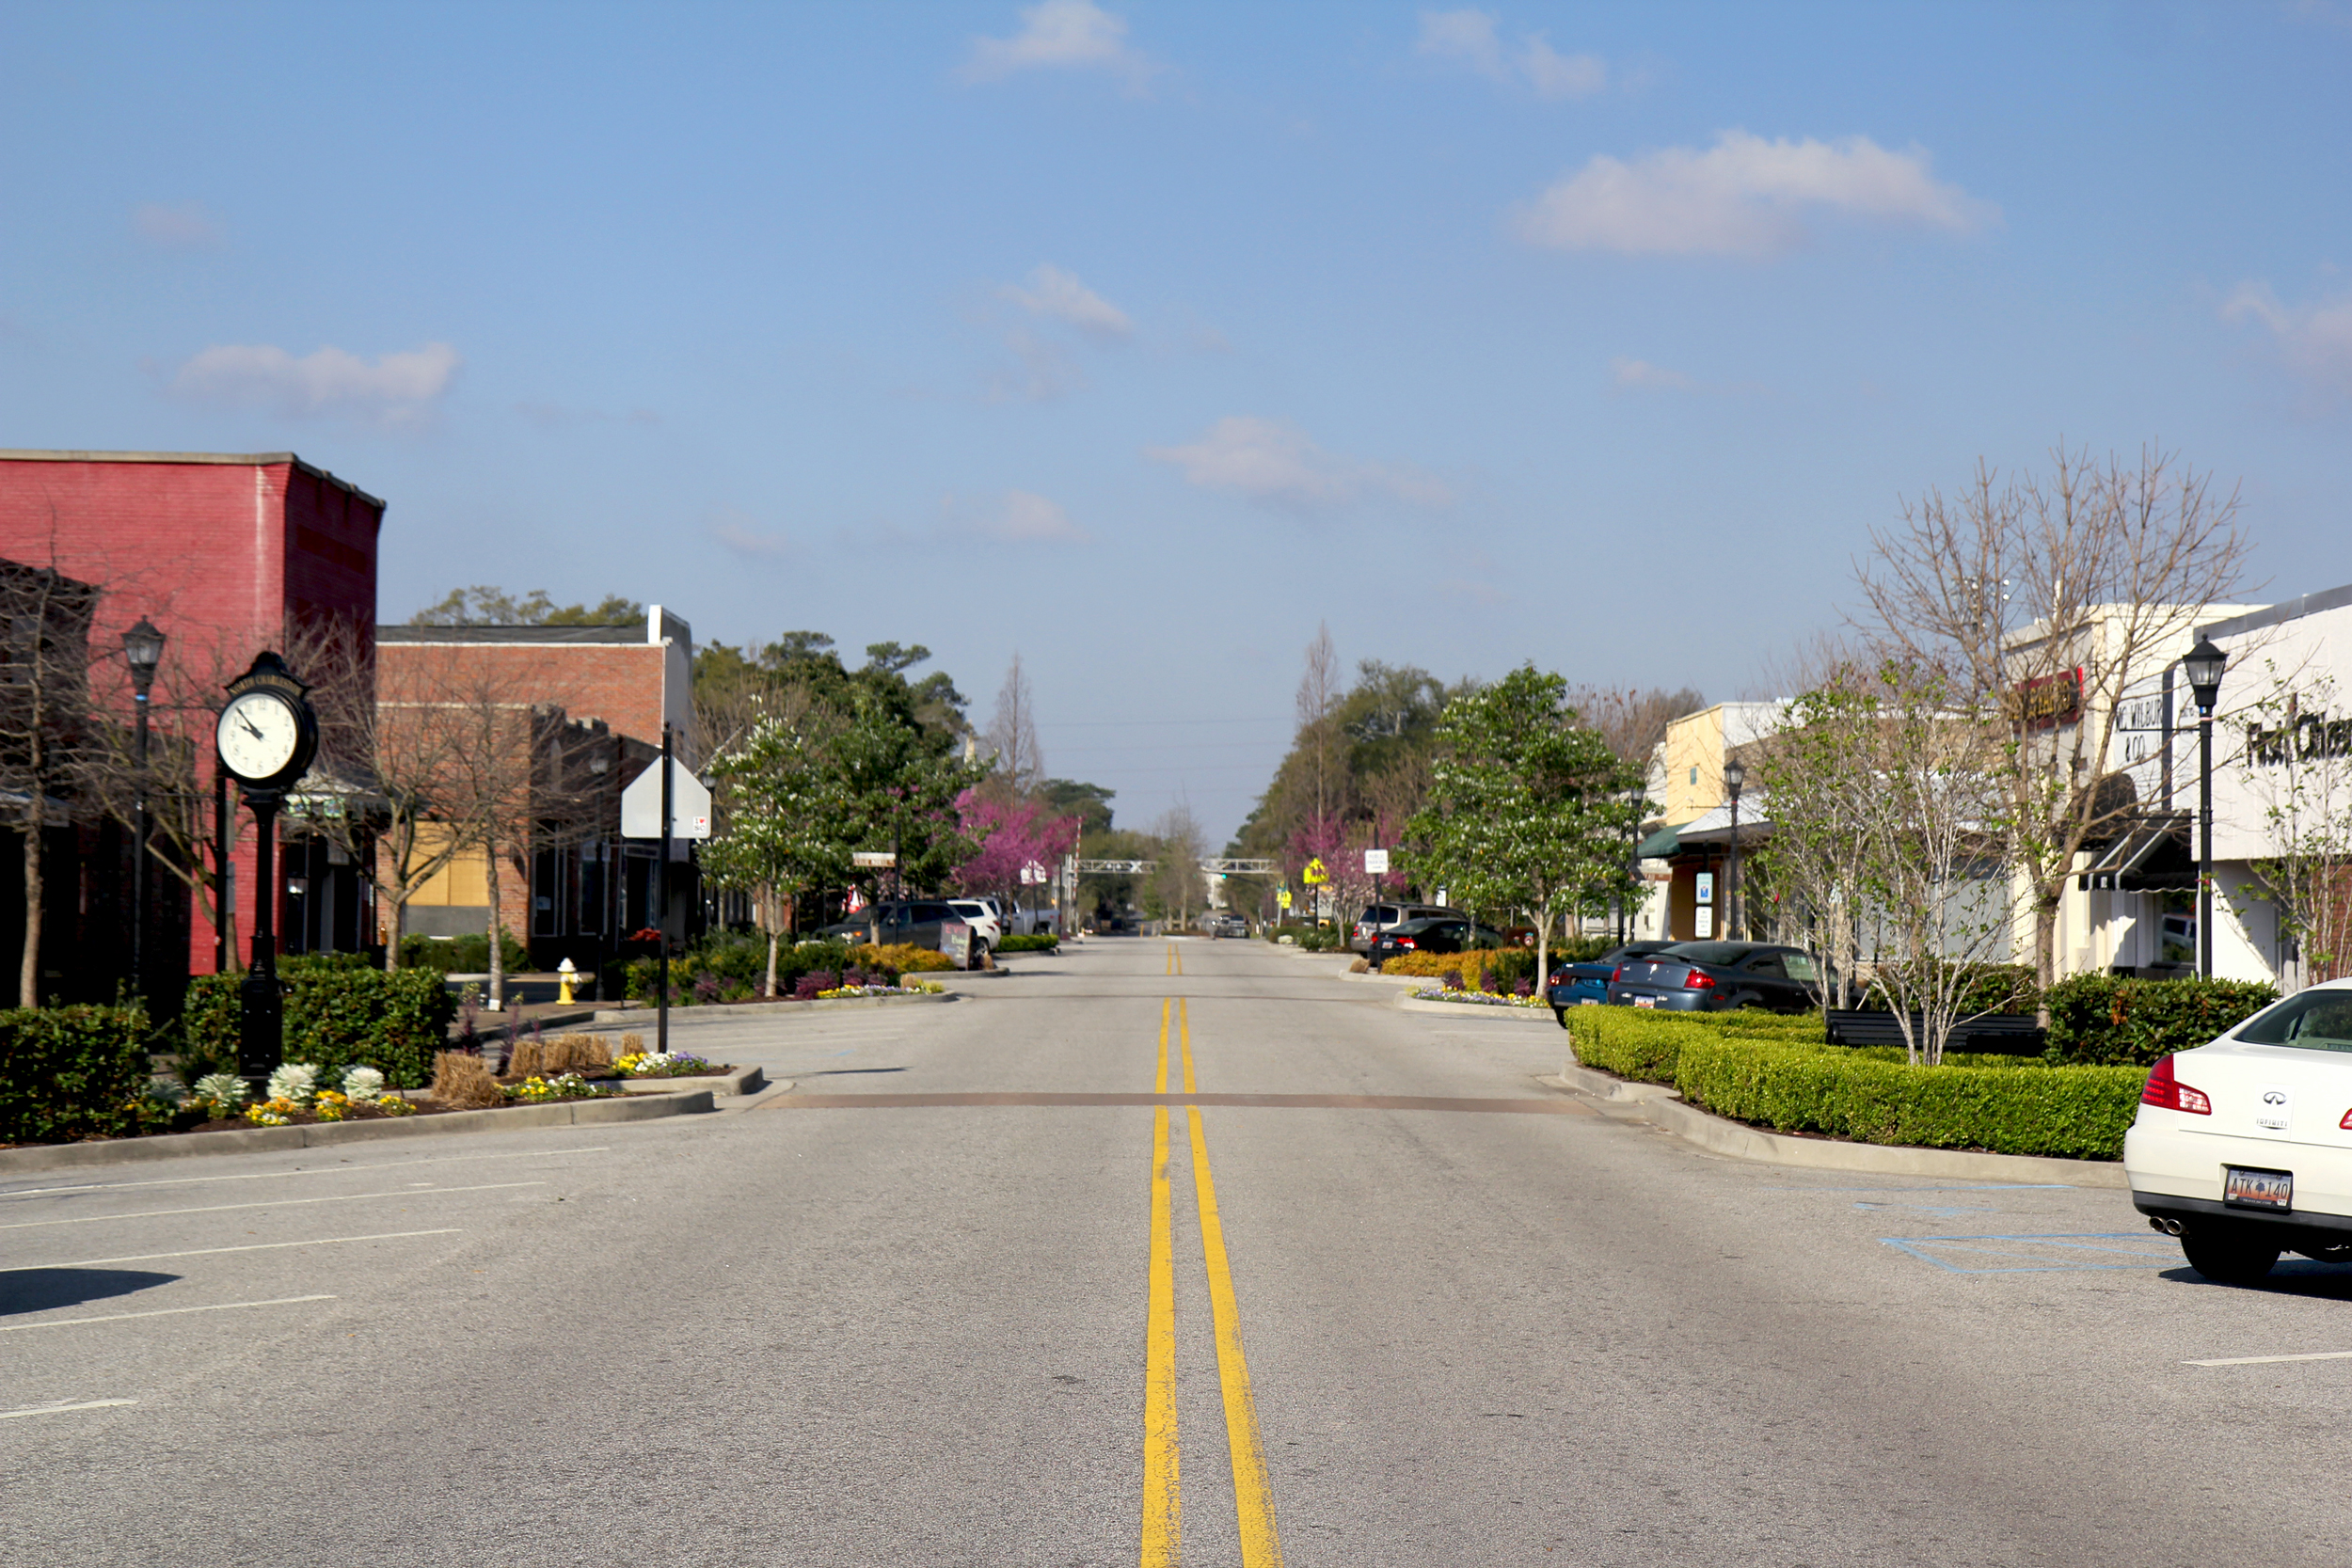 Downtown View Of Hanahan, SC